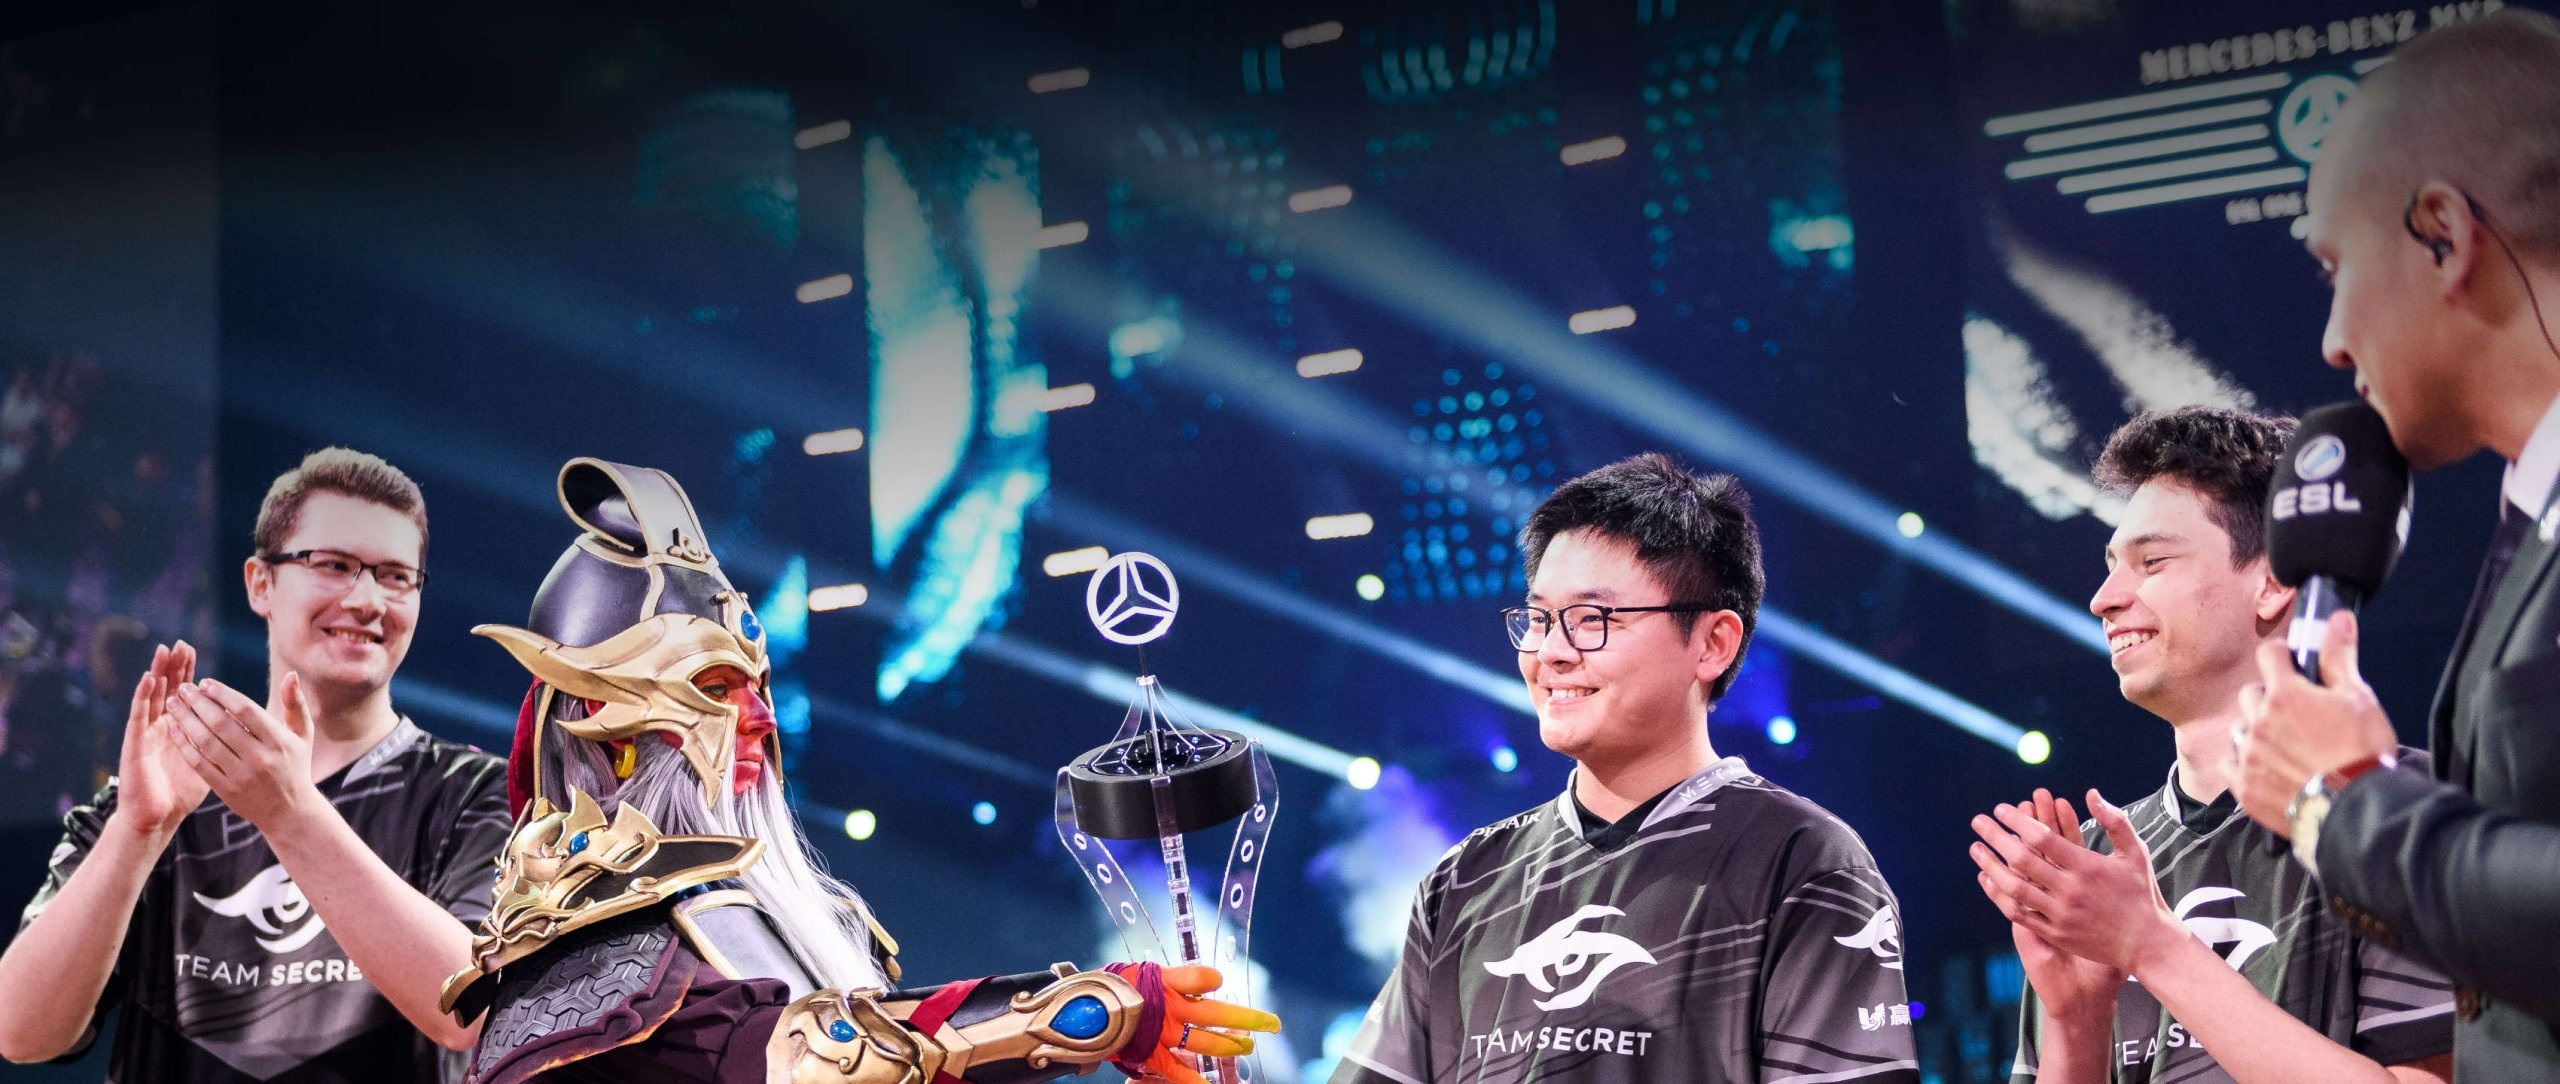 Mercedes-Benz MVP Trophy handed over to MidOne from Team Secret at the ESL One Hamburg.